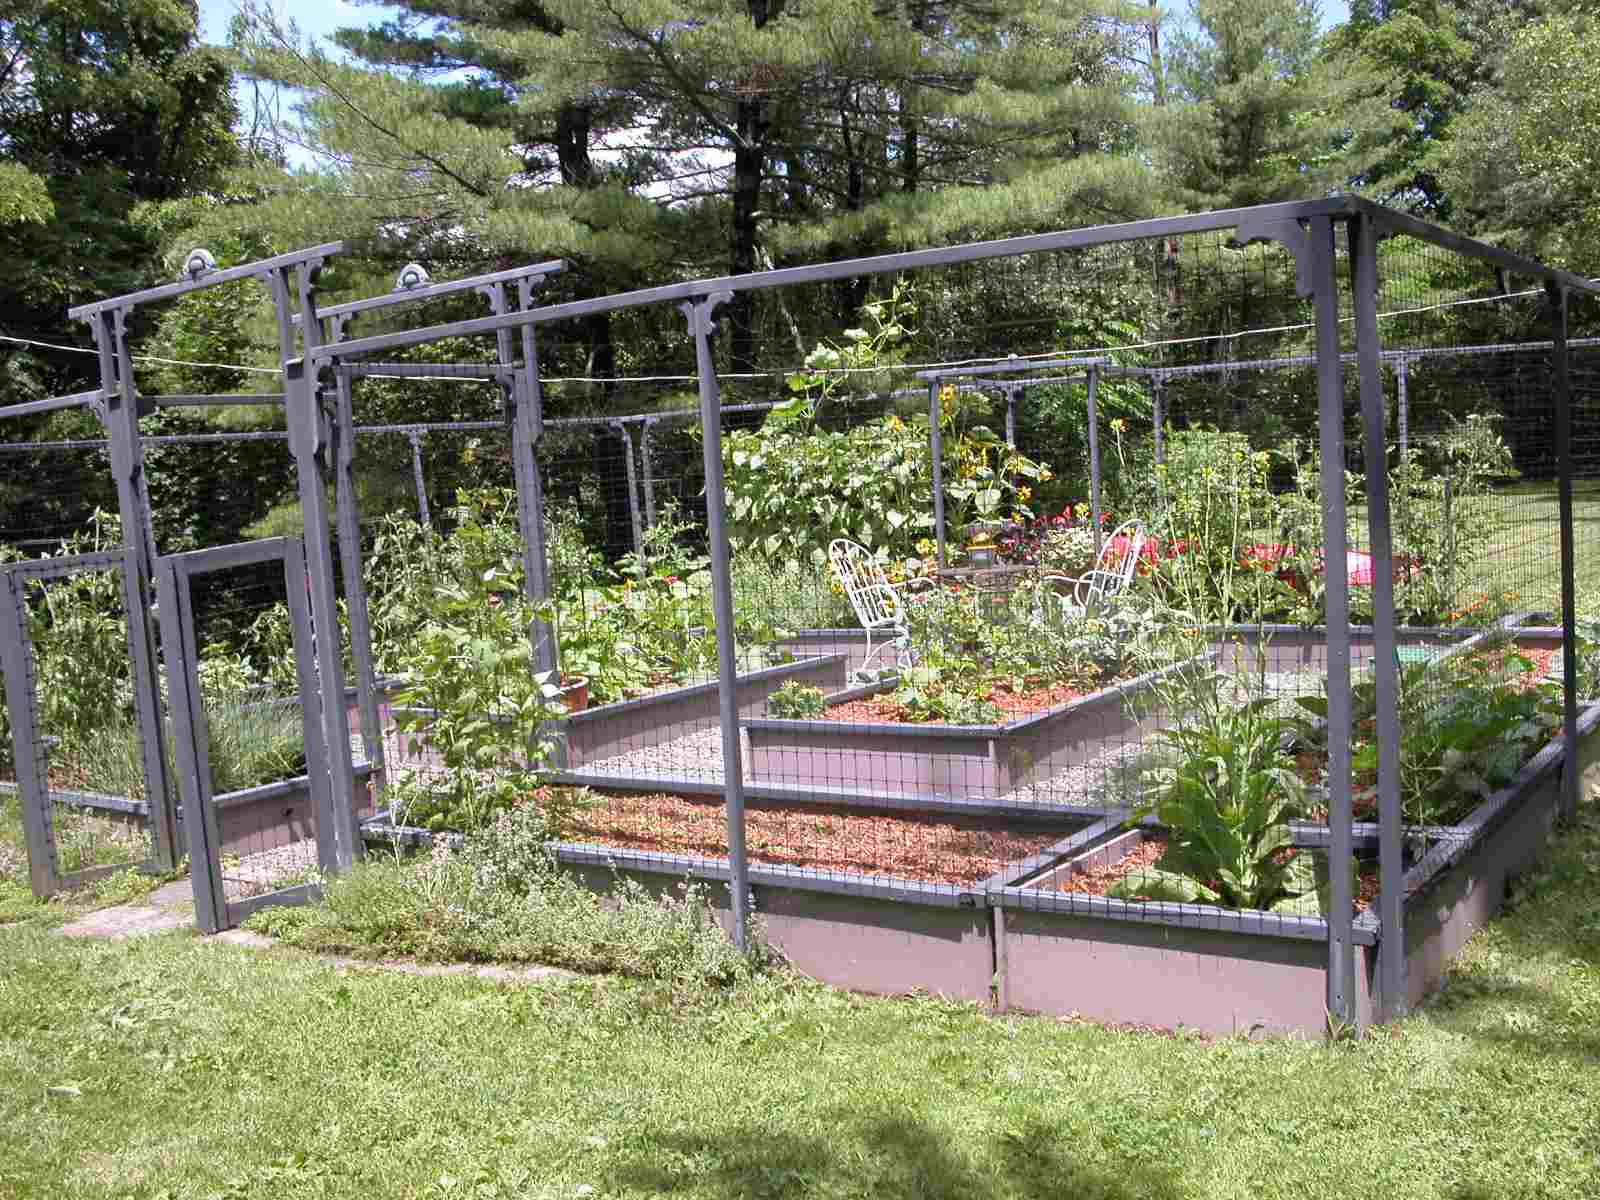 Fenced area just for vegetable gardening.